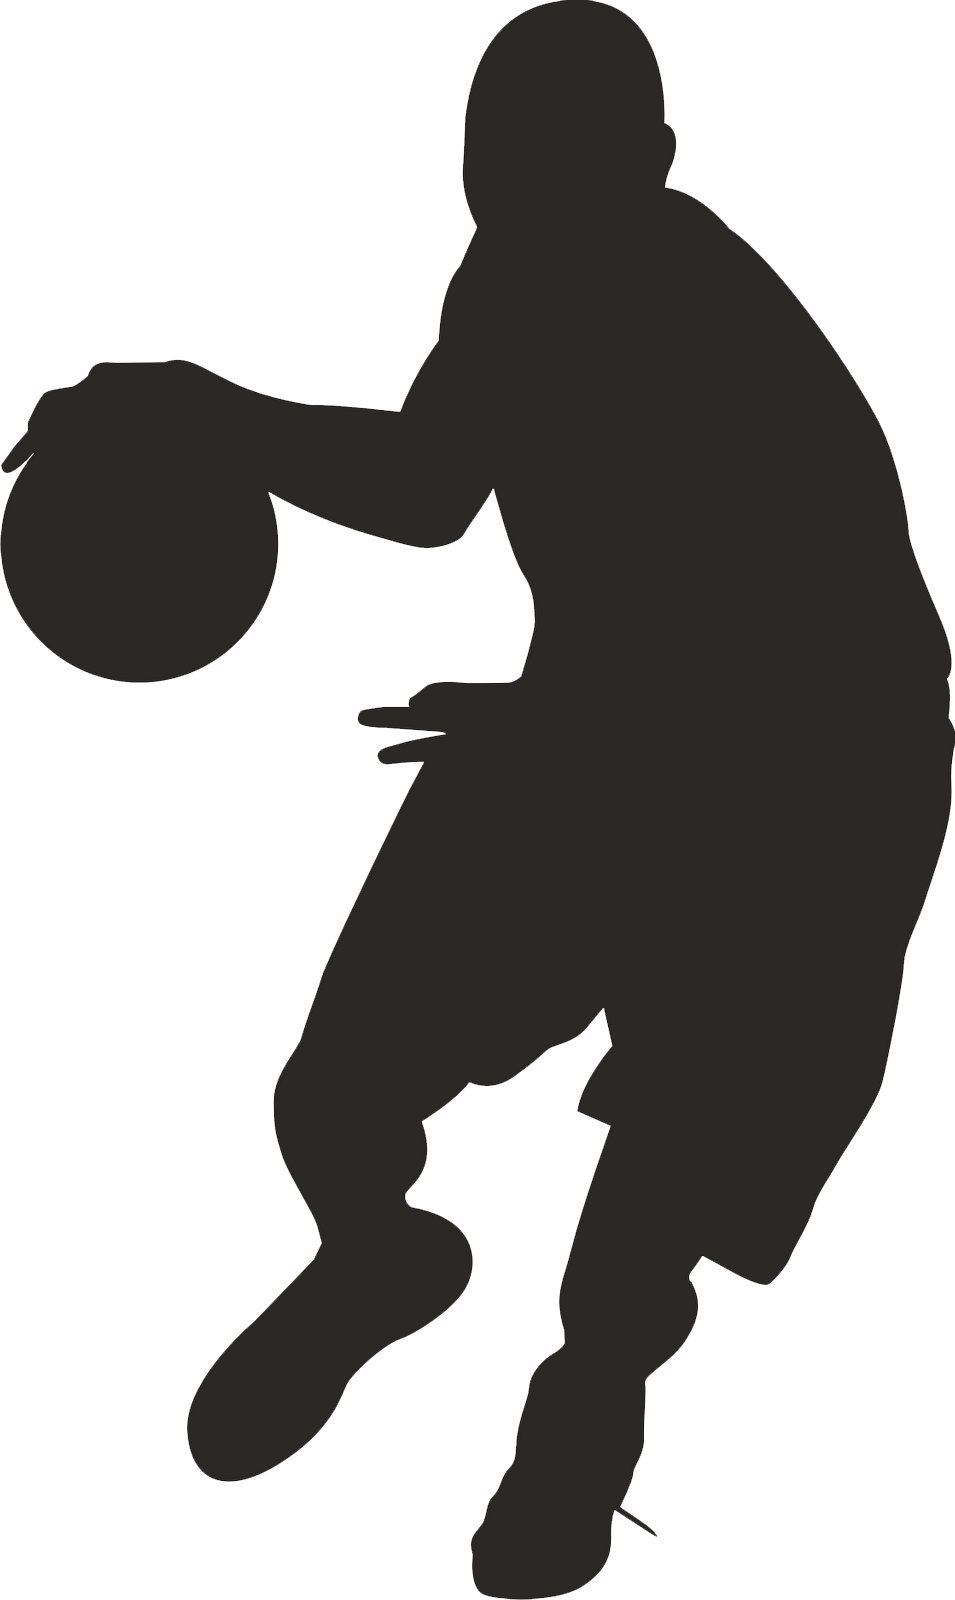 Female basketball player clipart clip art black and white stock Silhouette Basketball Players at GetDrawings.com | Free for personal ... clip art black and white stock